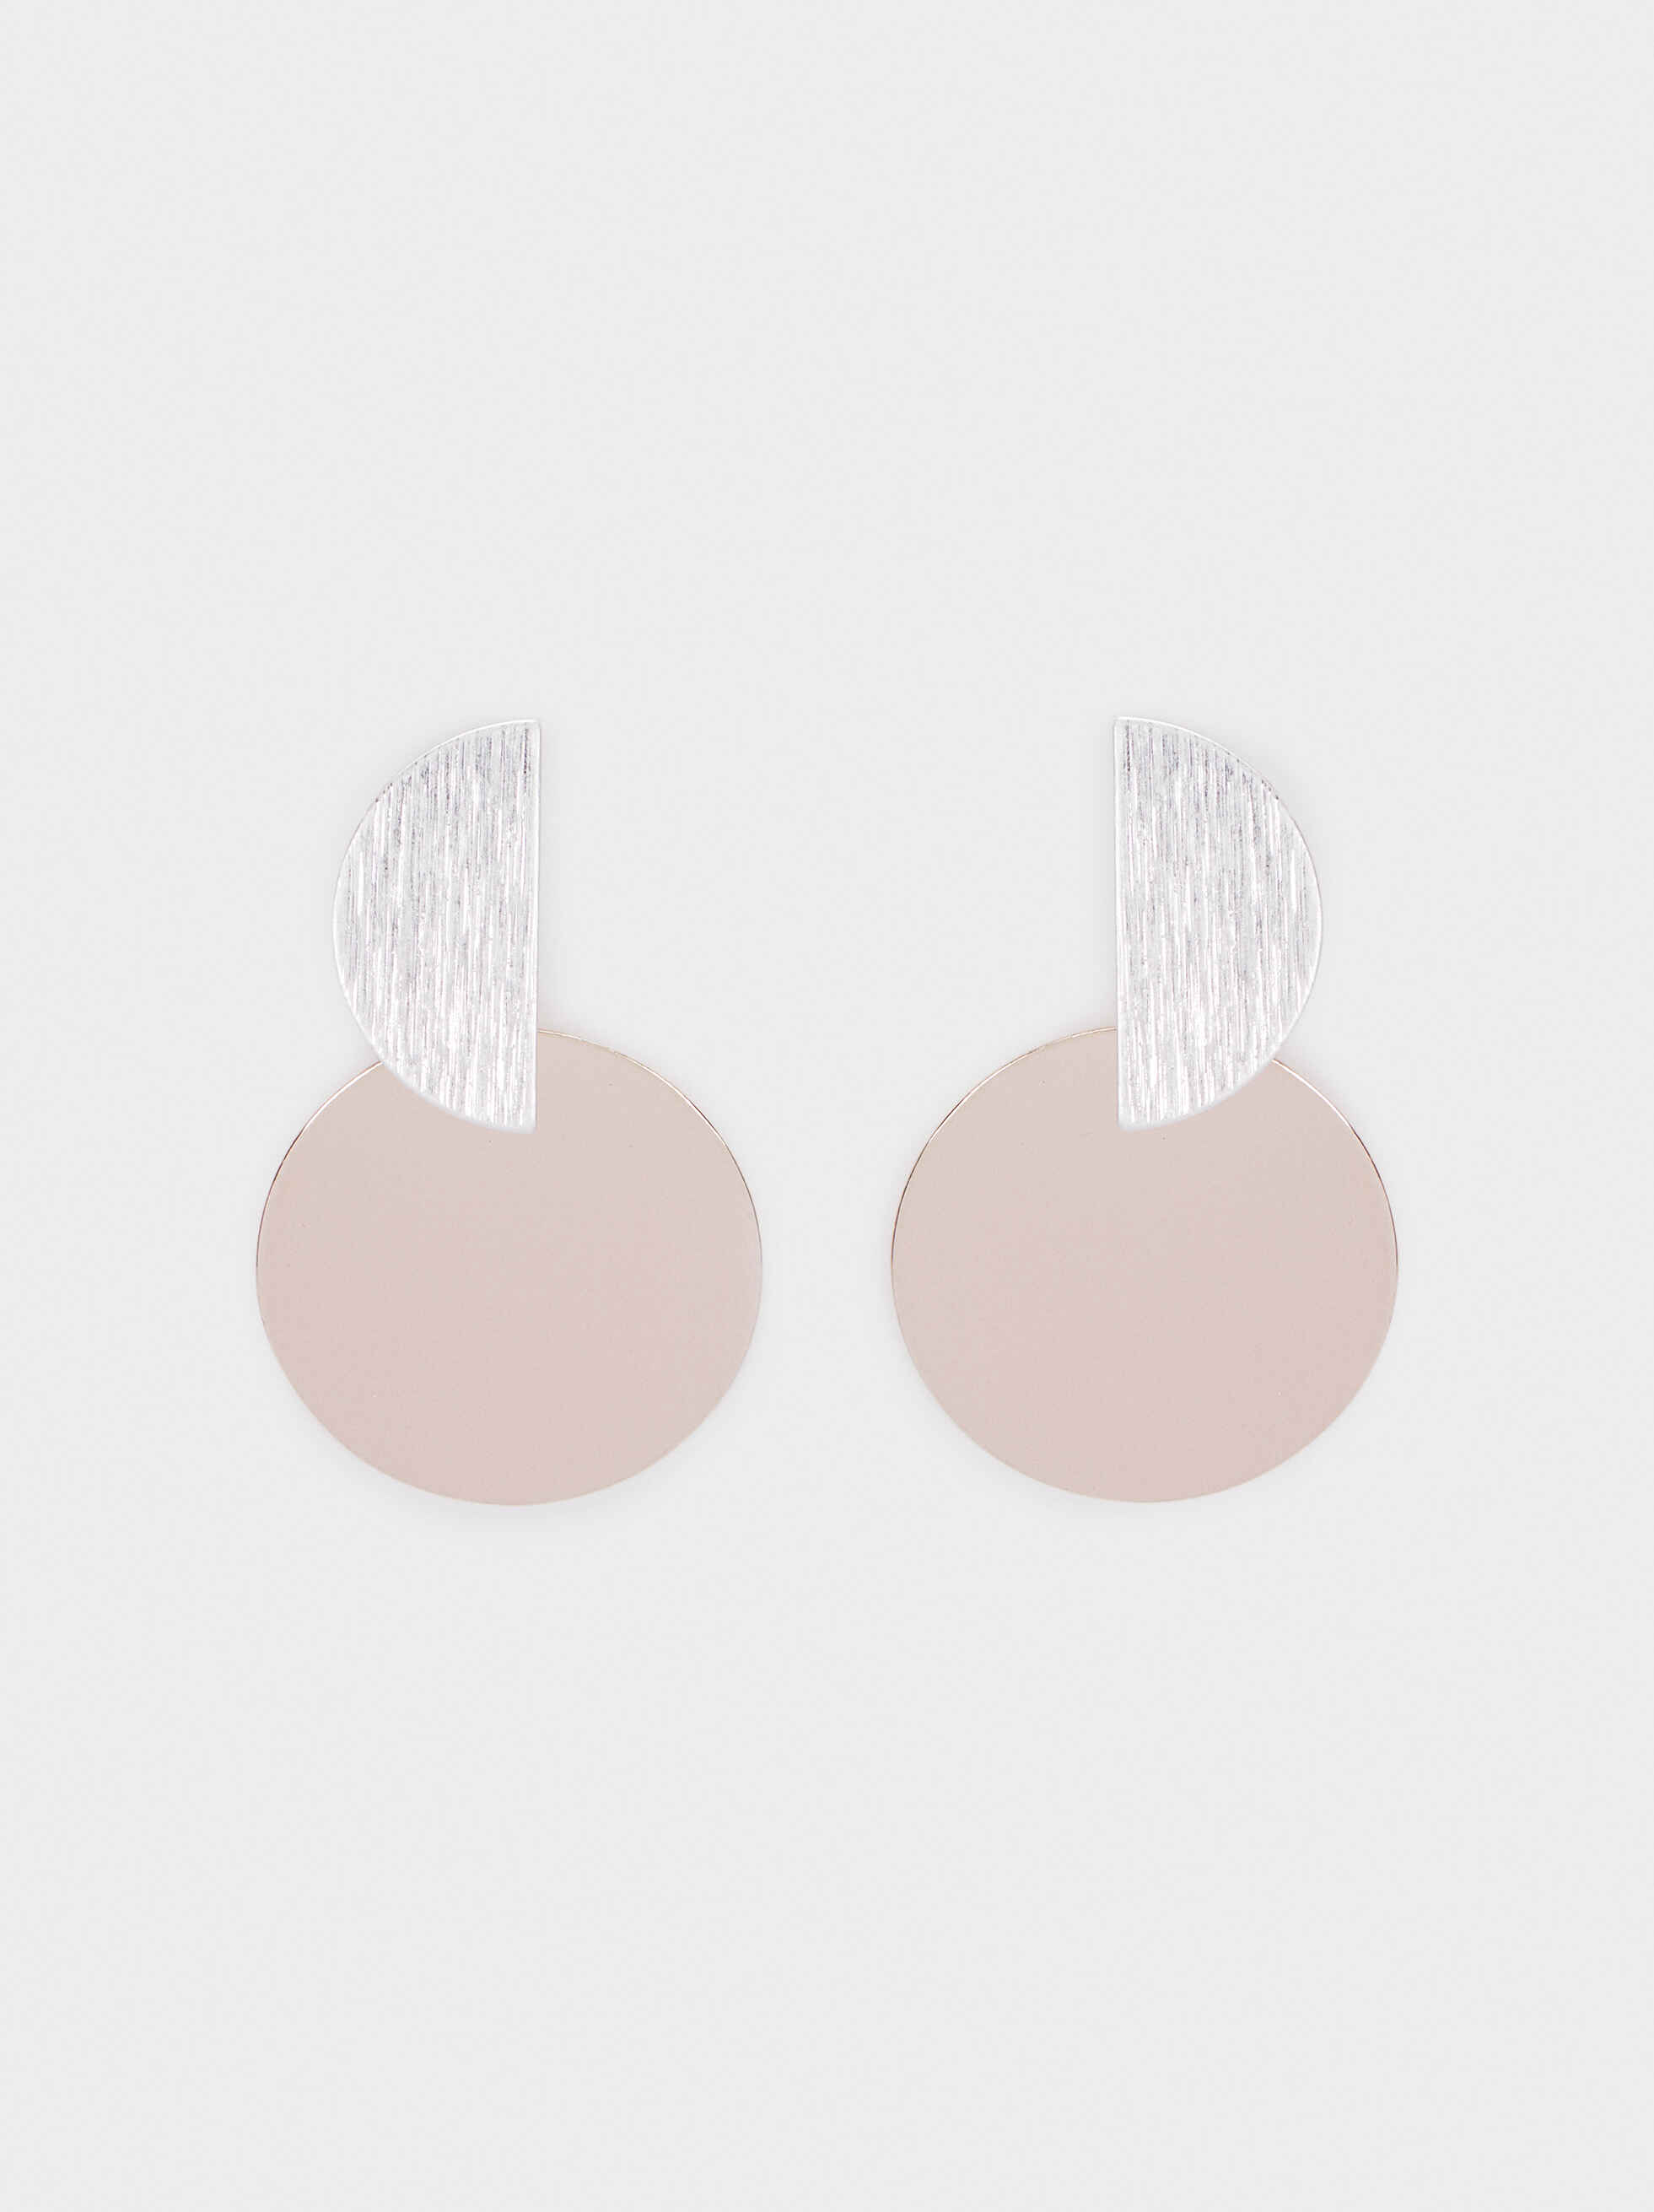 Medium Geometric Earrings, Silver, hi-res